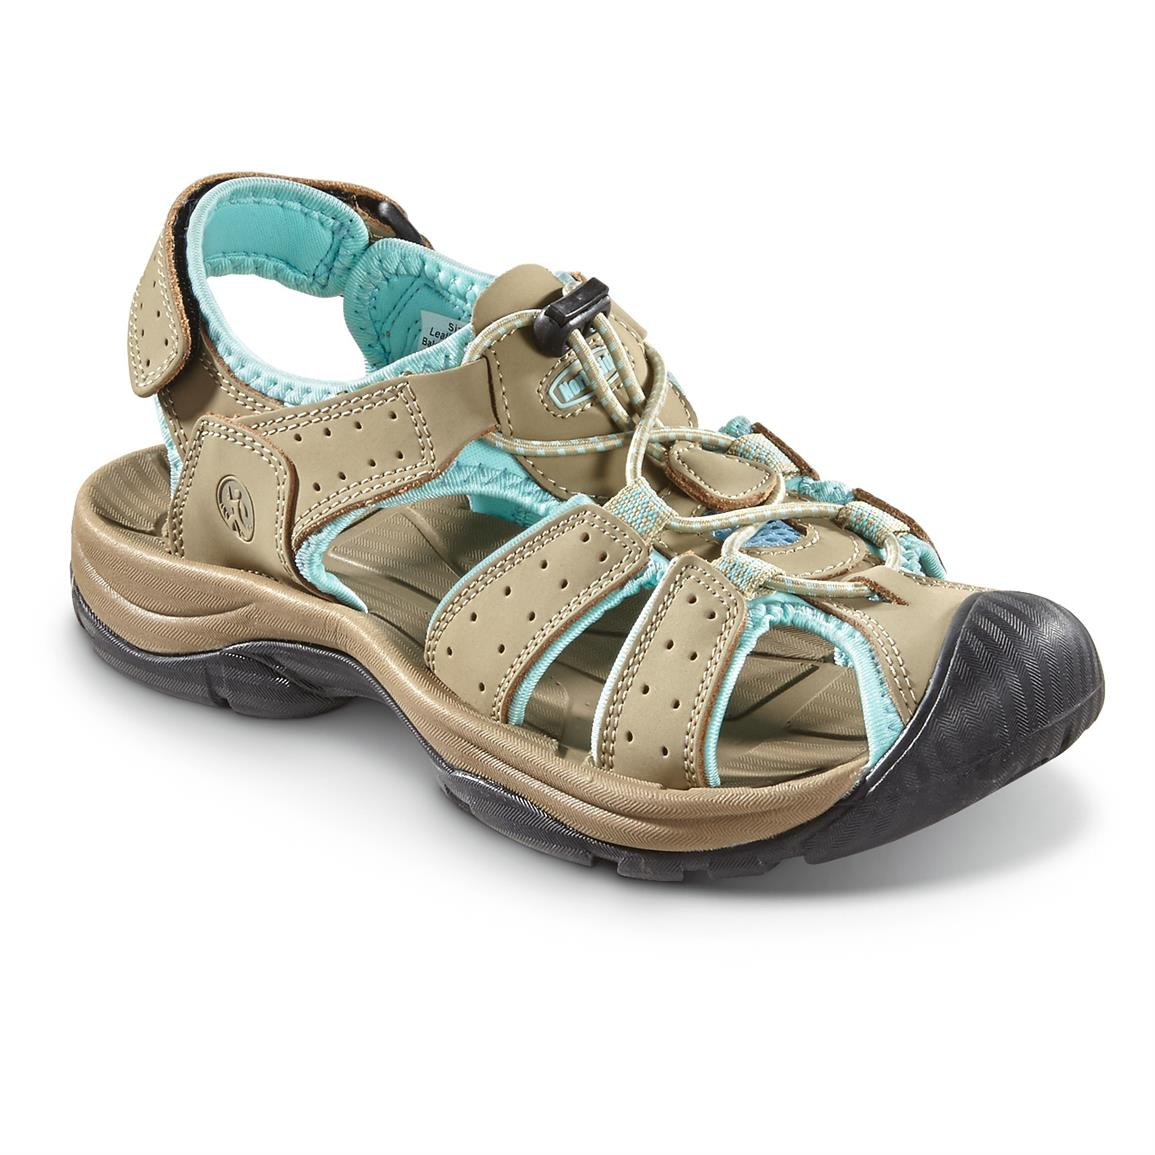 Northside Women's Trinidad Water Shoes, Tan / Aqua